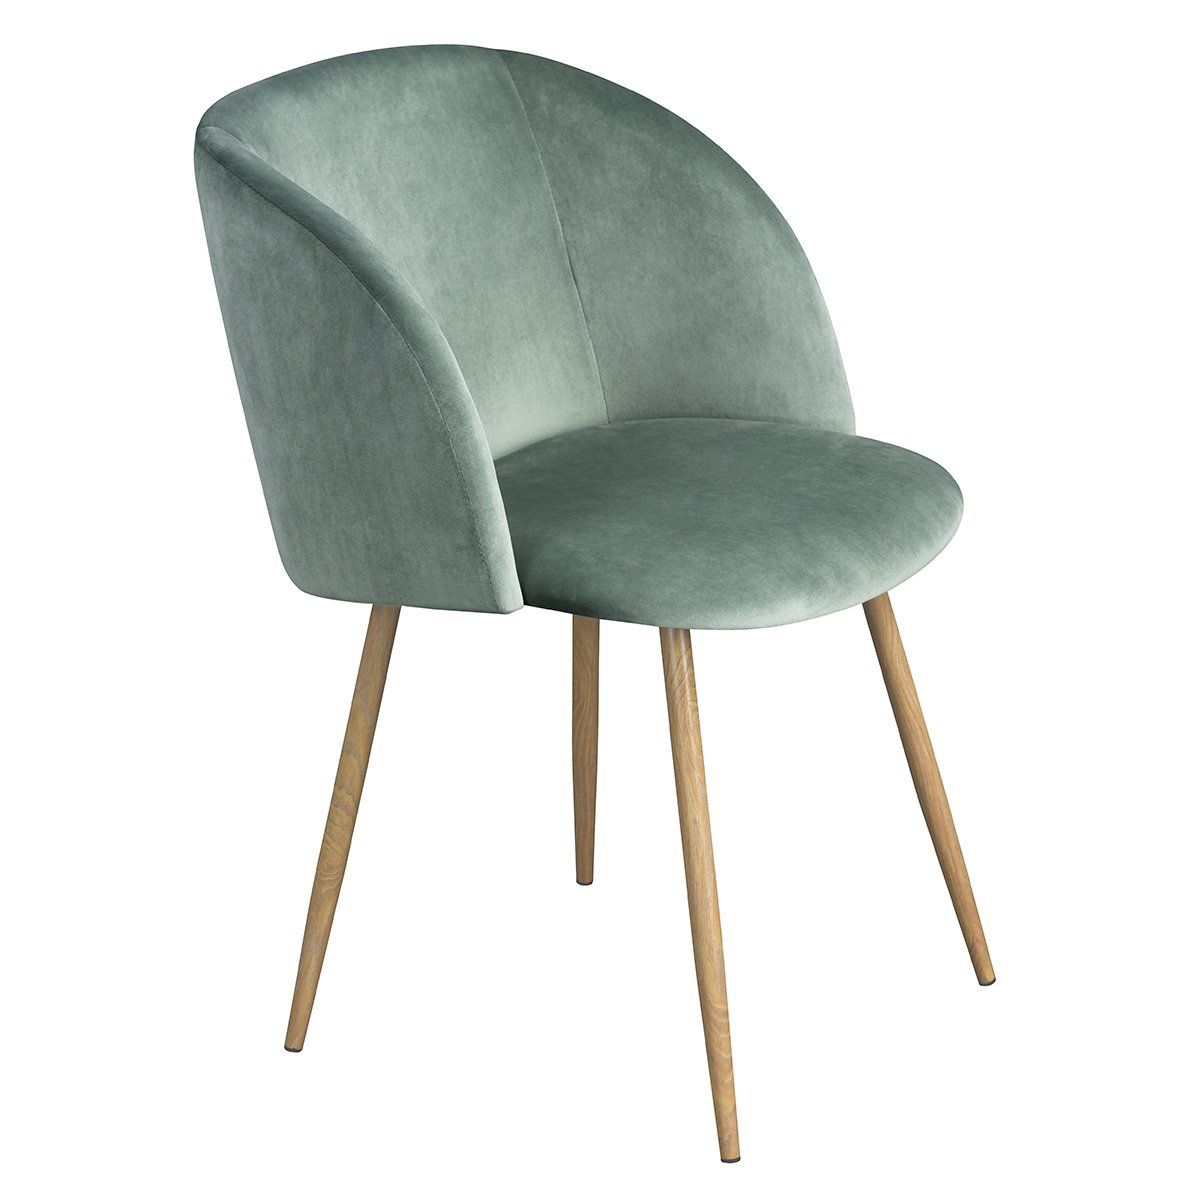 Eggree Armchair Soft Accent Chair Lounge Designer Furniture For